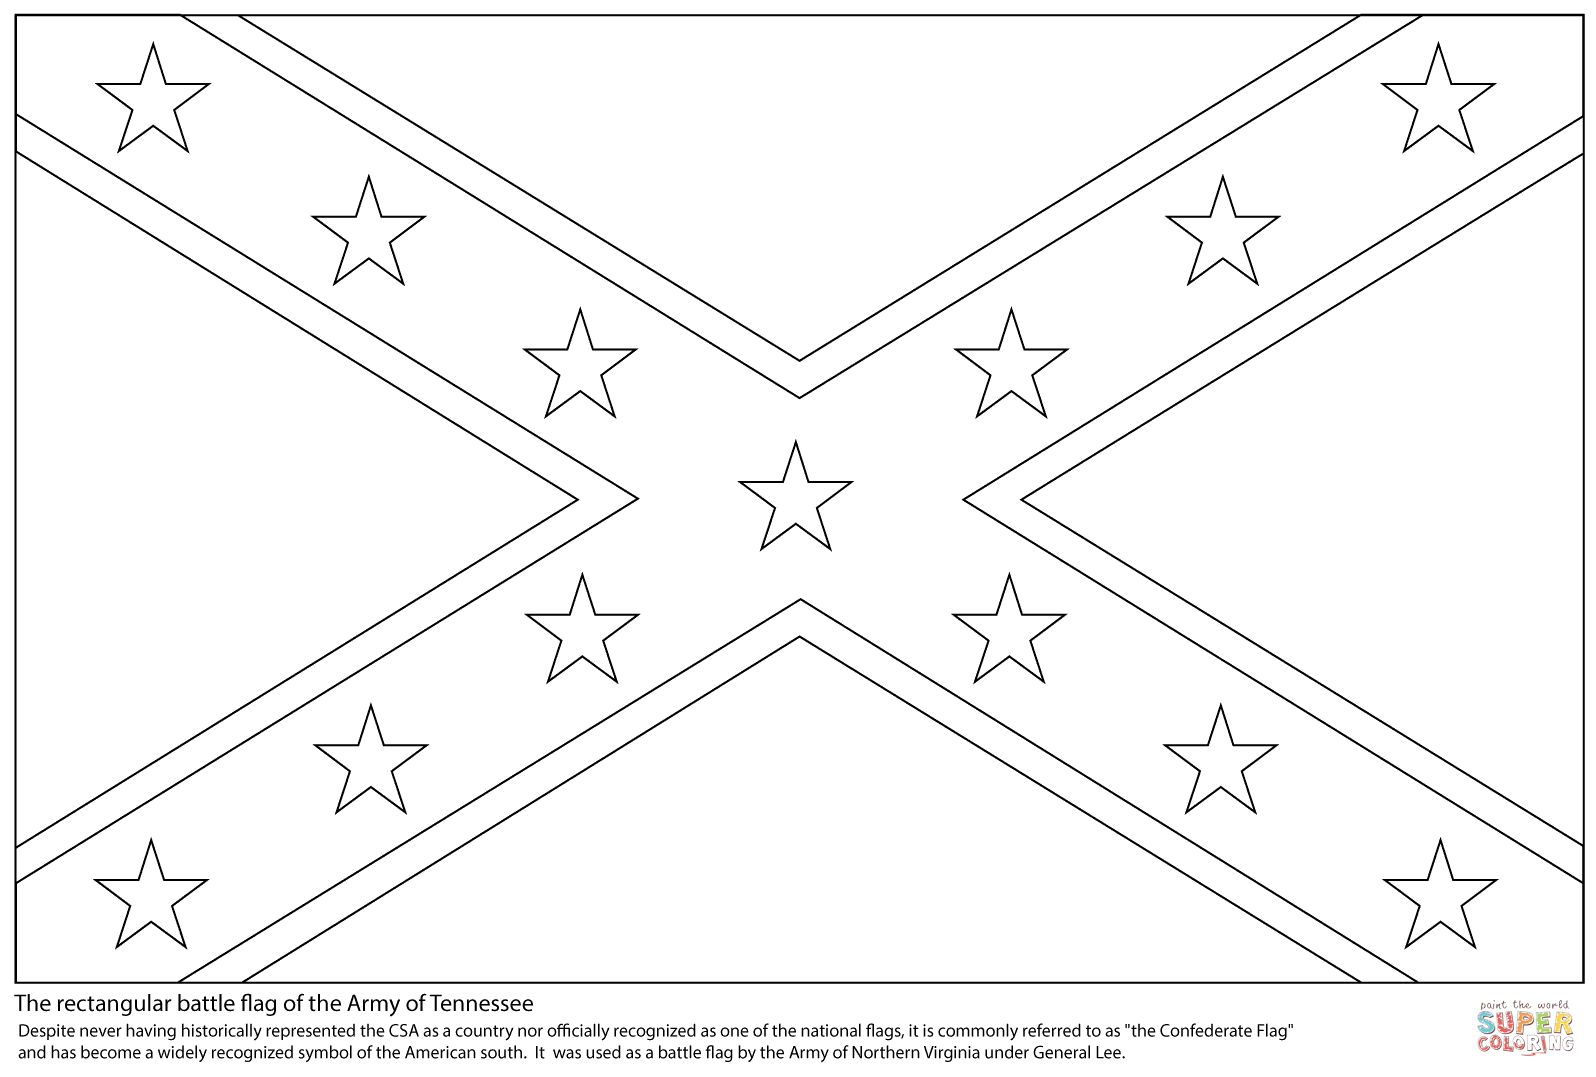 rebel flag coloring pages battle flag of the confederate states of america coloring rebel pages coloring flag